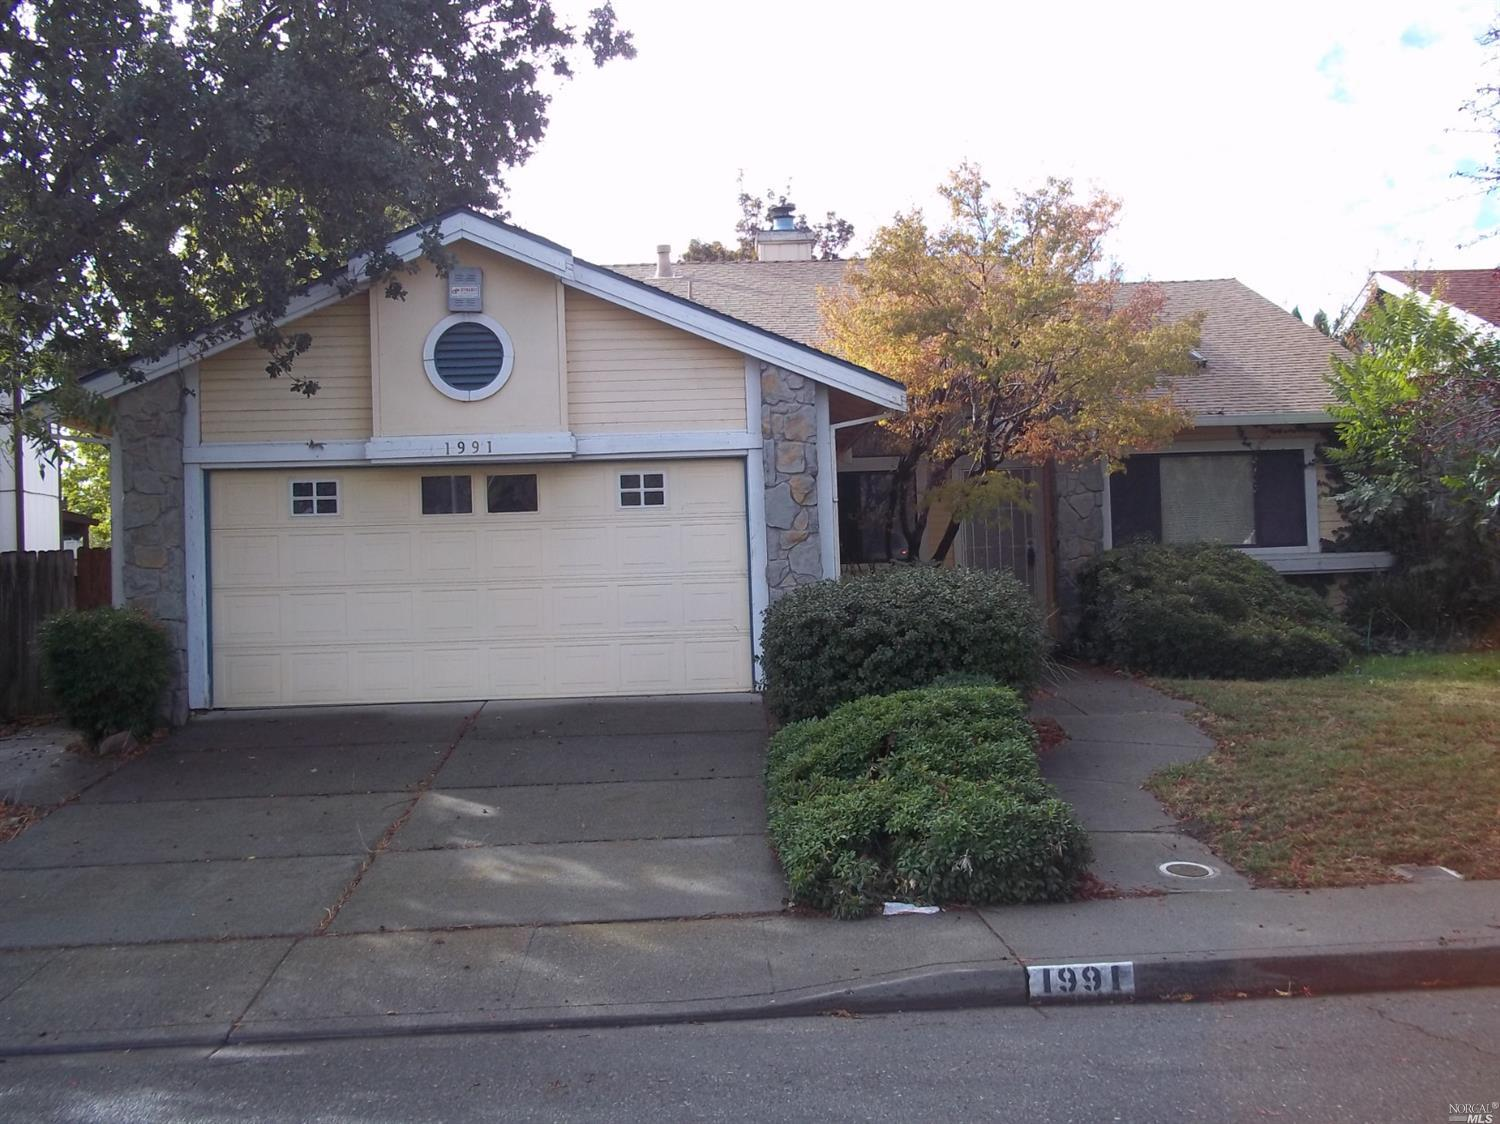 Fantastic opportunity to get into this Large single story home in a great neighborhood.  Over 1,800